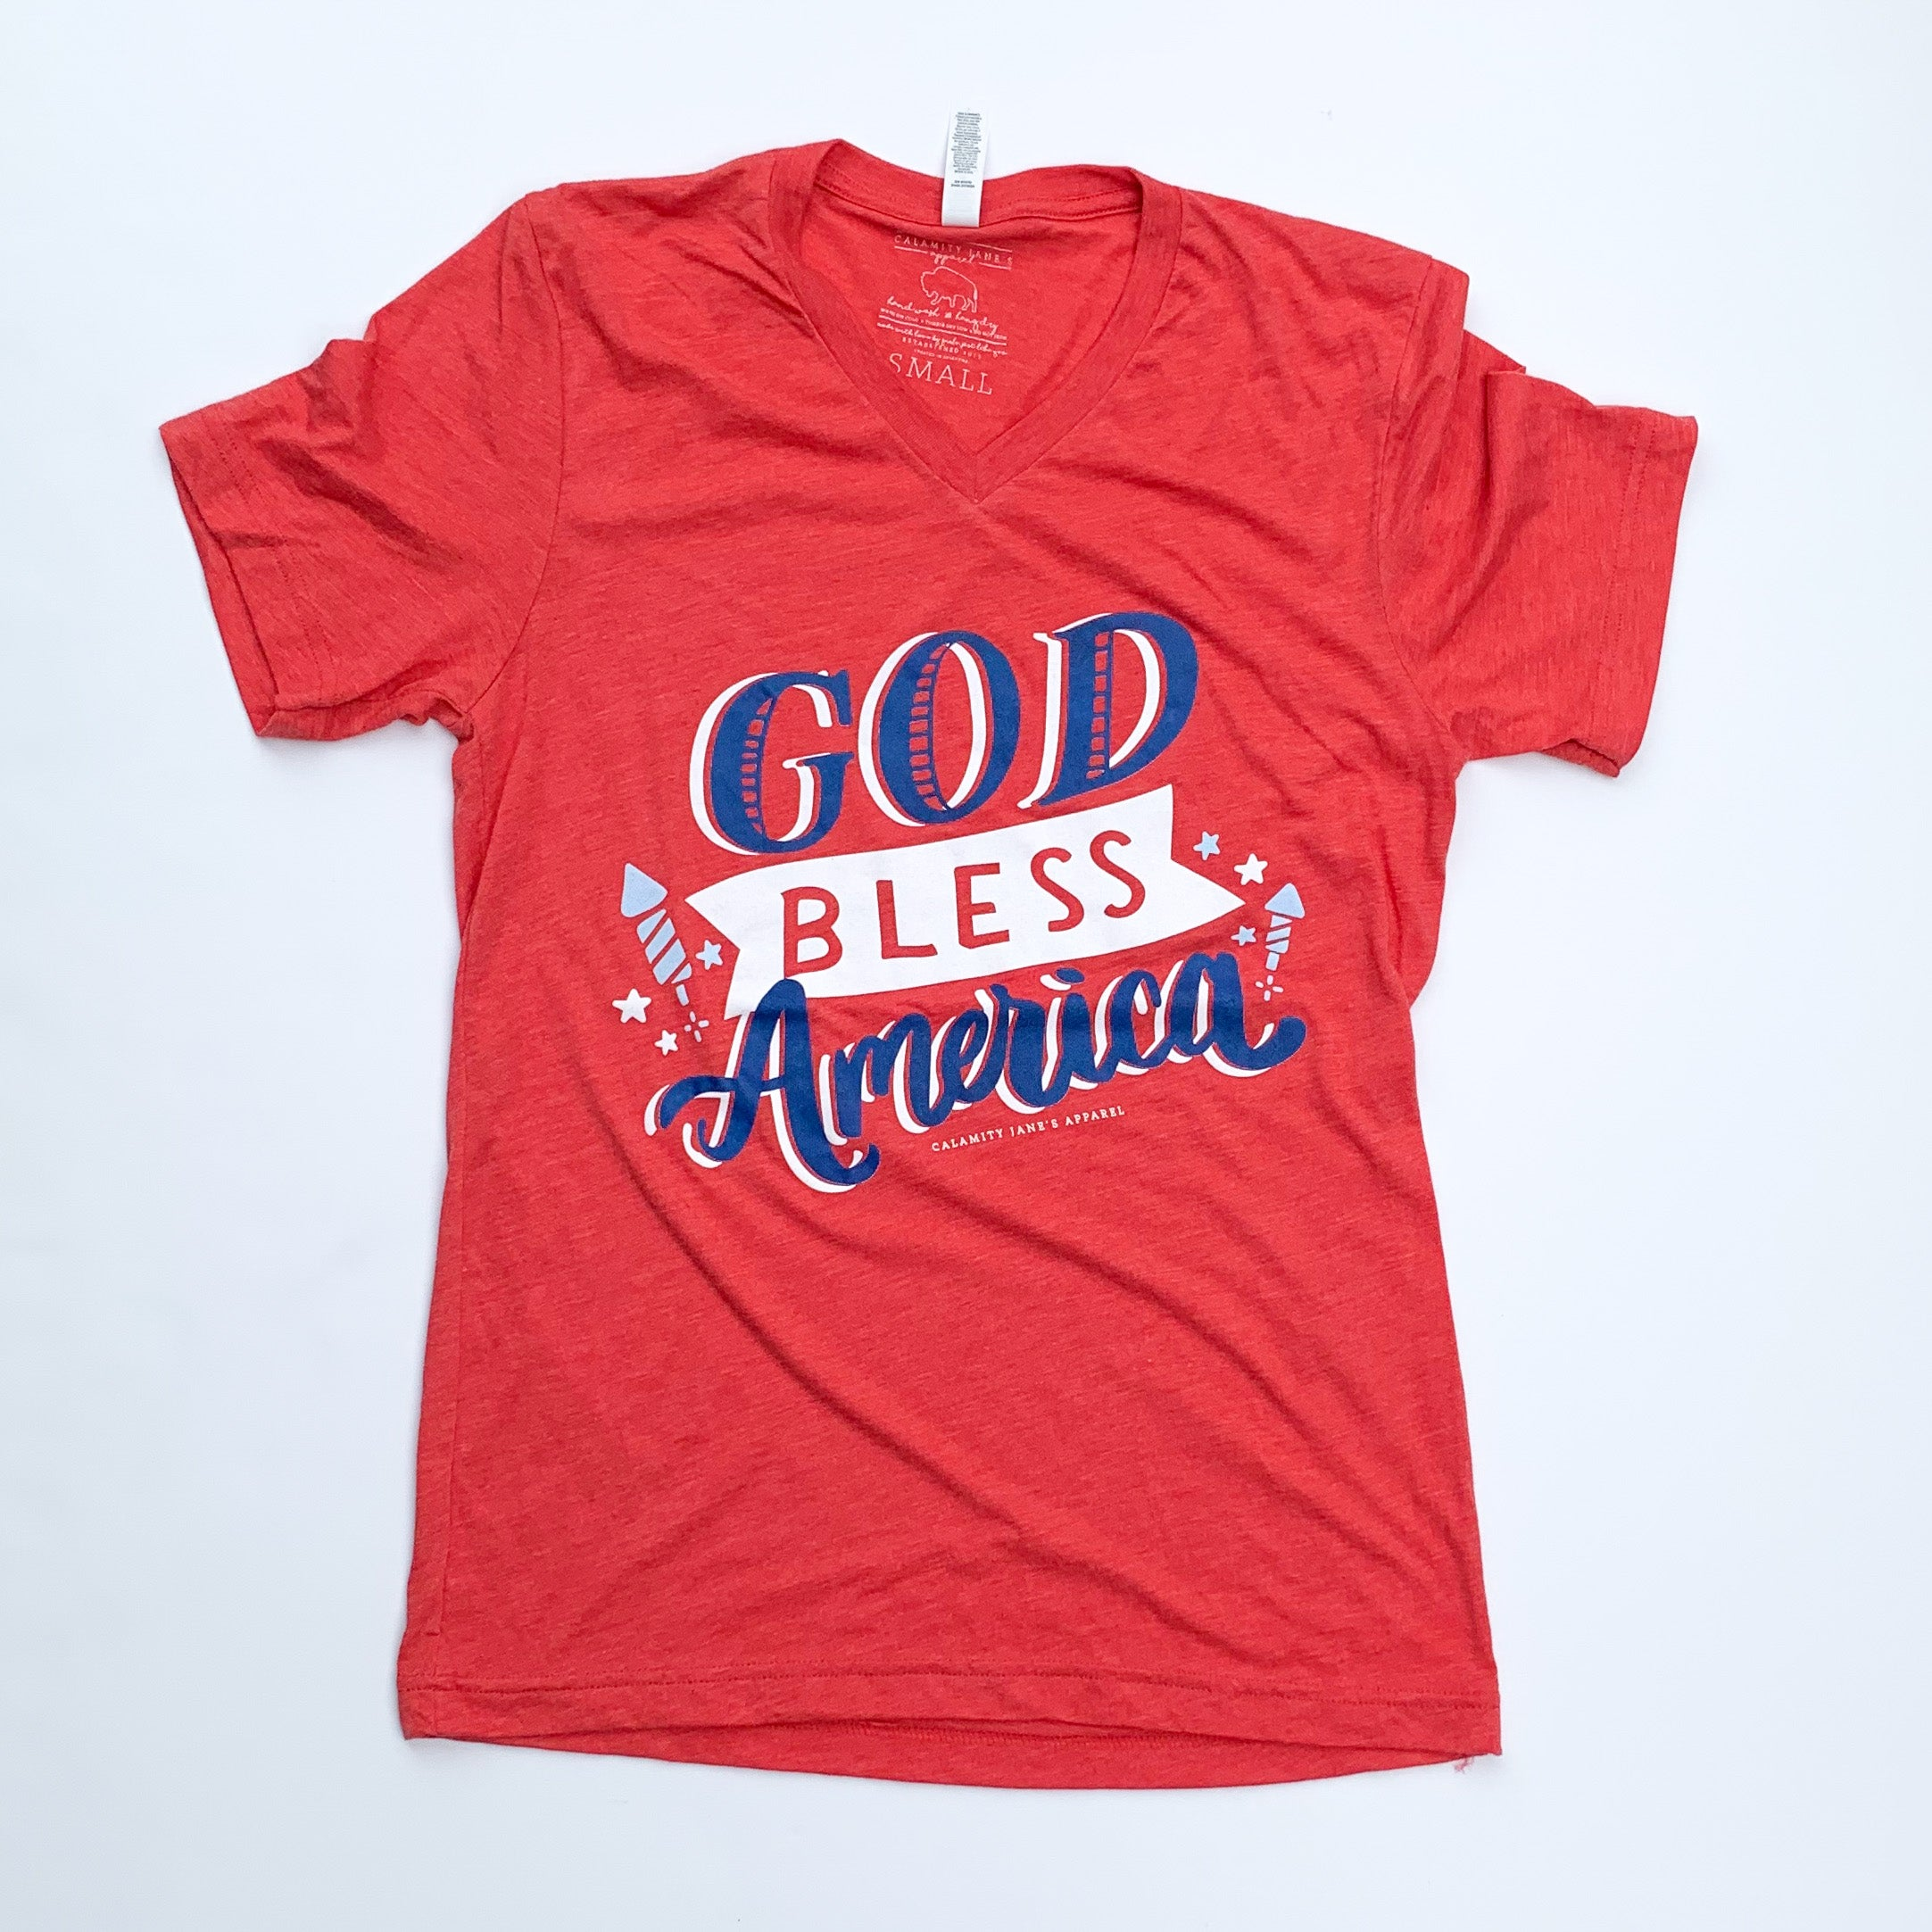 SALE ITEM: AMERICAN SPIRIT 2020: God Bless America